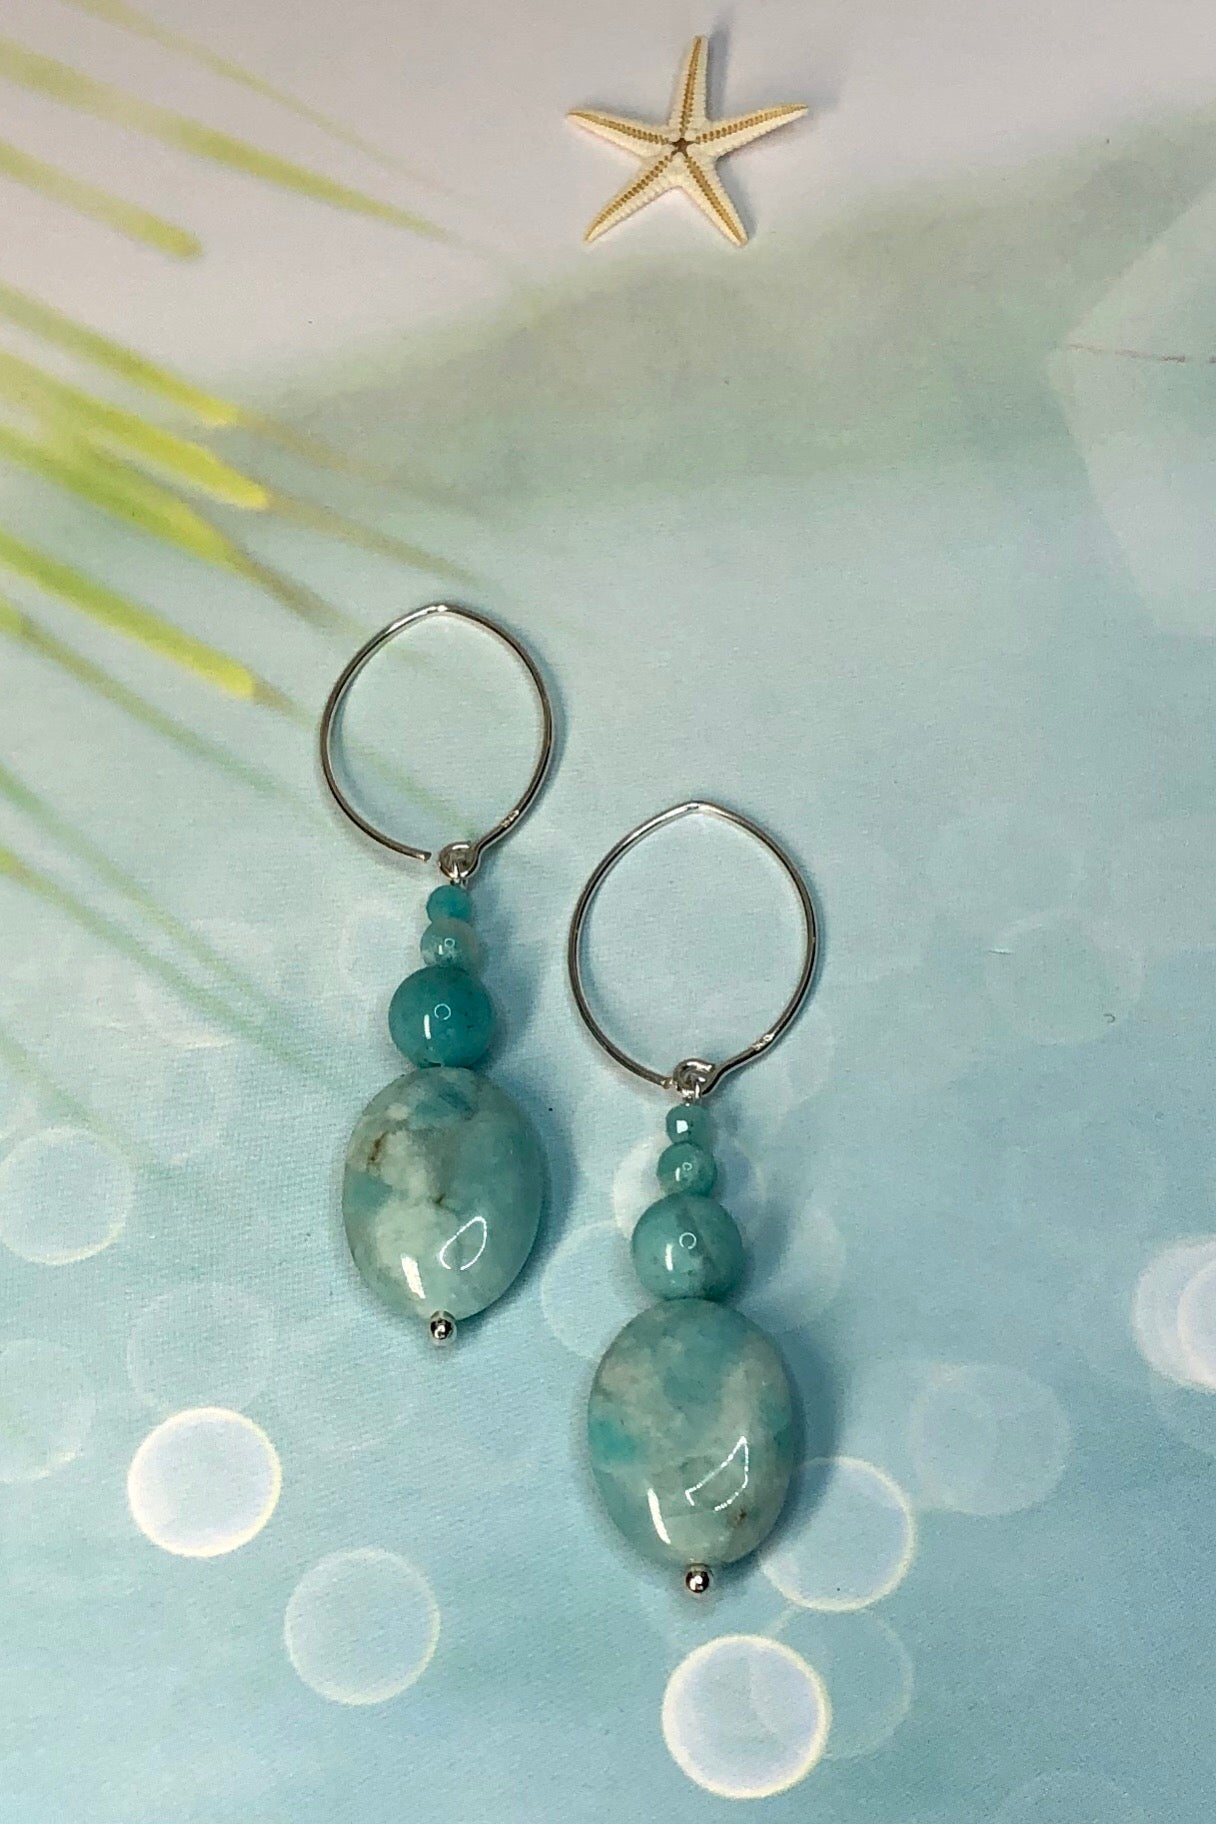 the Earrings Serendipity Amazonite Quatro are a classic drop design, a perfect simple design using the lovely pale minty blue Amazonite in the colour of the sea